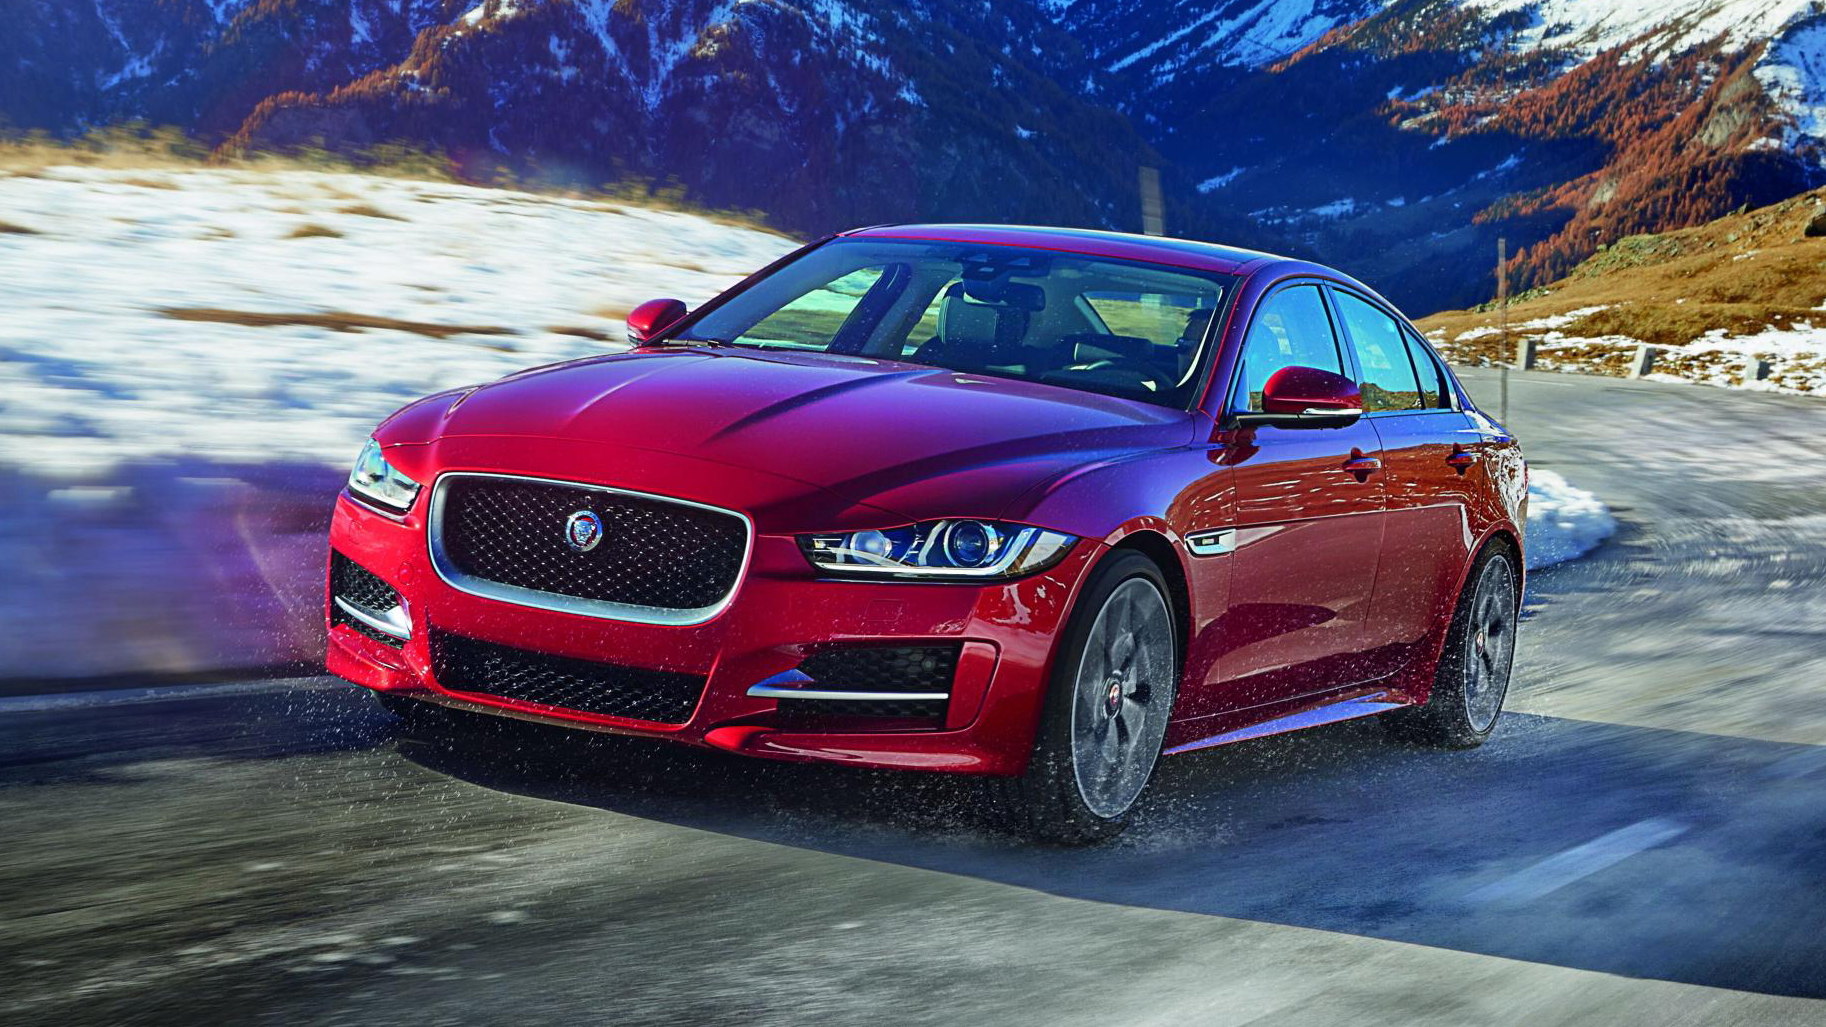 jaguar xe all wheel drive review baby jag driven in the uk top gear. Black Bedroom Furniture Sets. Home Design Ideas